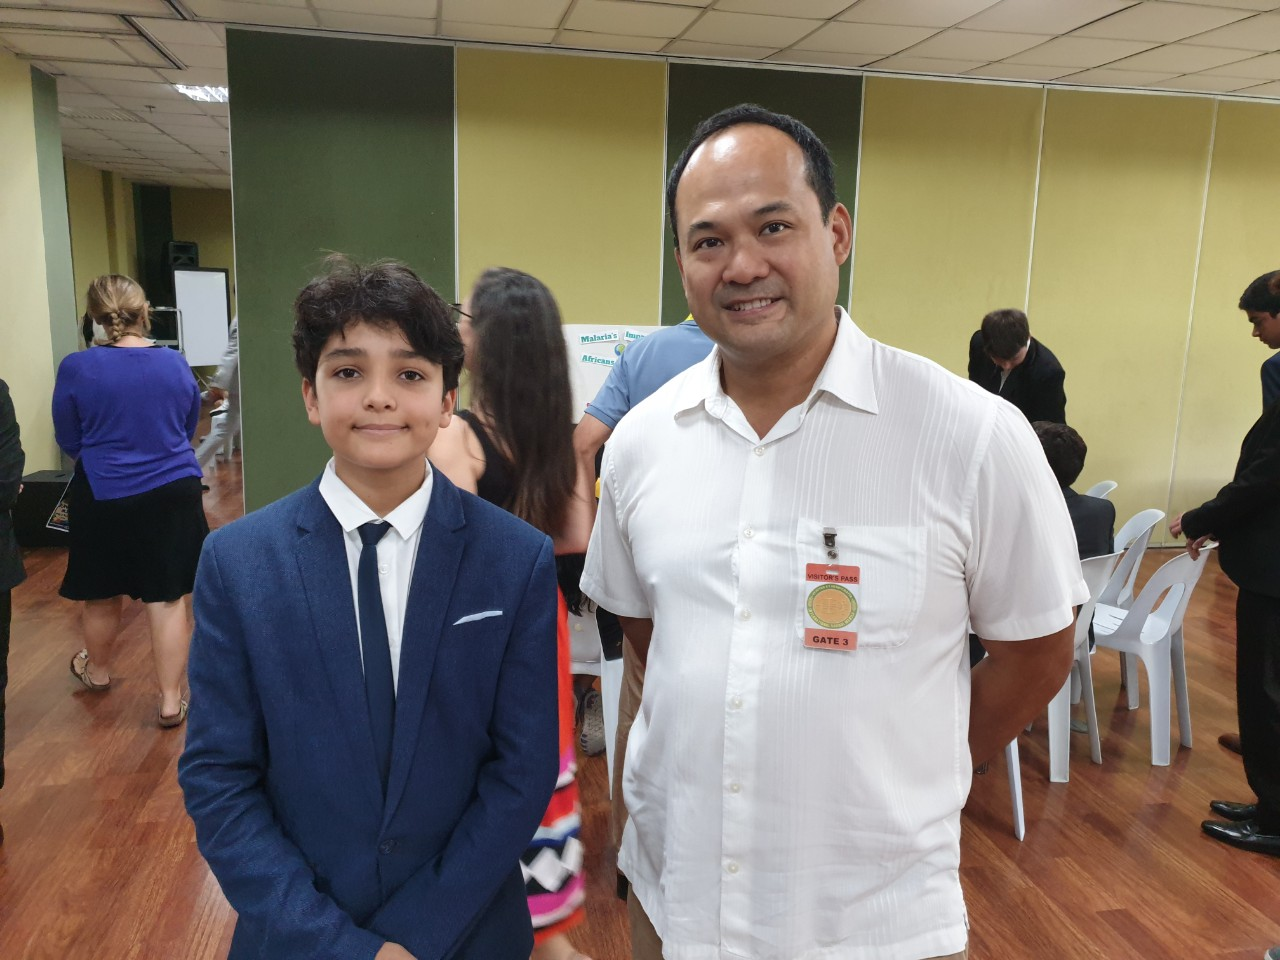 SOLARIC PRESIDENT VISITS AN EIGHTH GRADER AT INTERNATIONAL SCHOOL MANILA